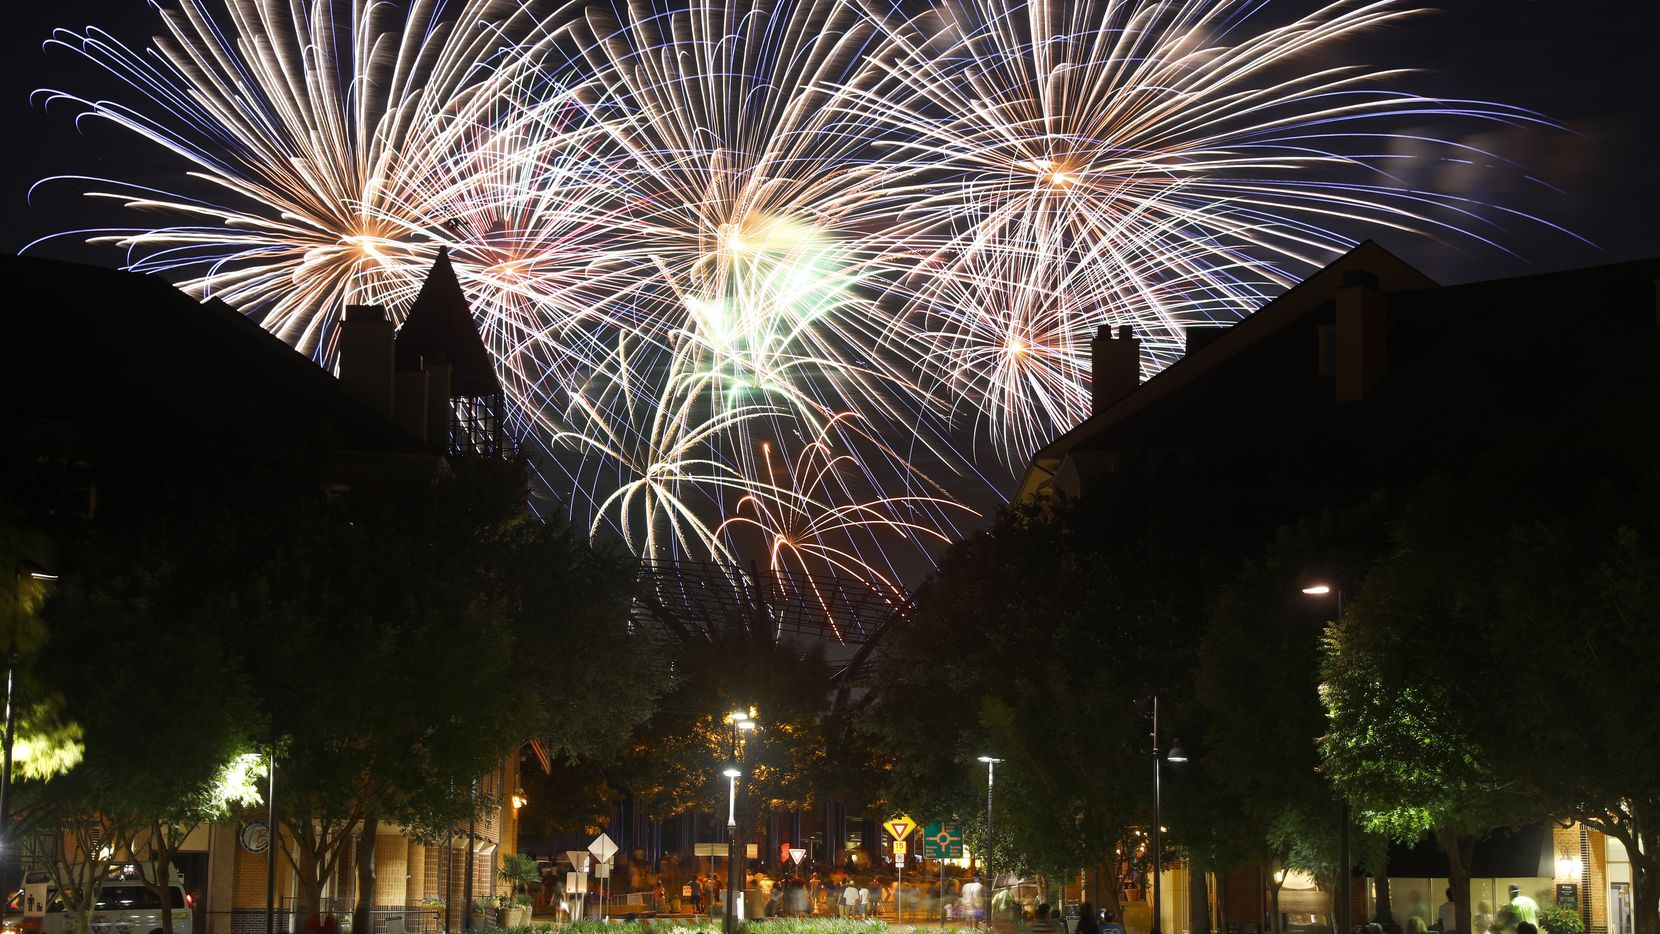 Kaboom Town fireworks will launch from a secure and unpublicized location this year in light of safety concerns.